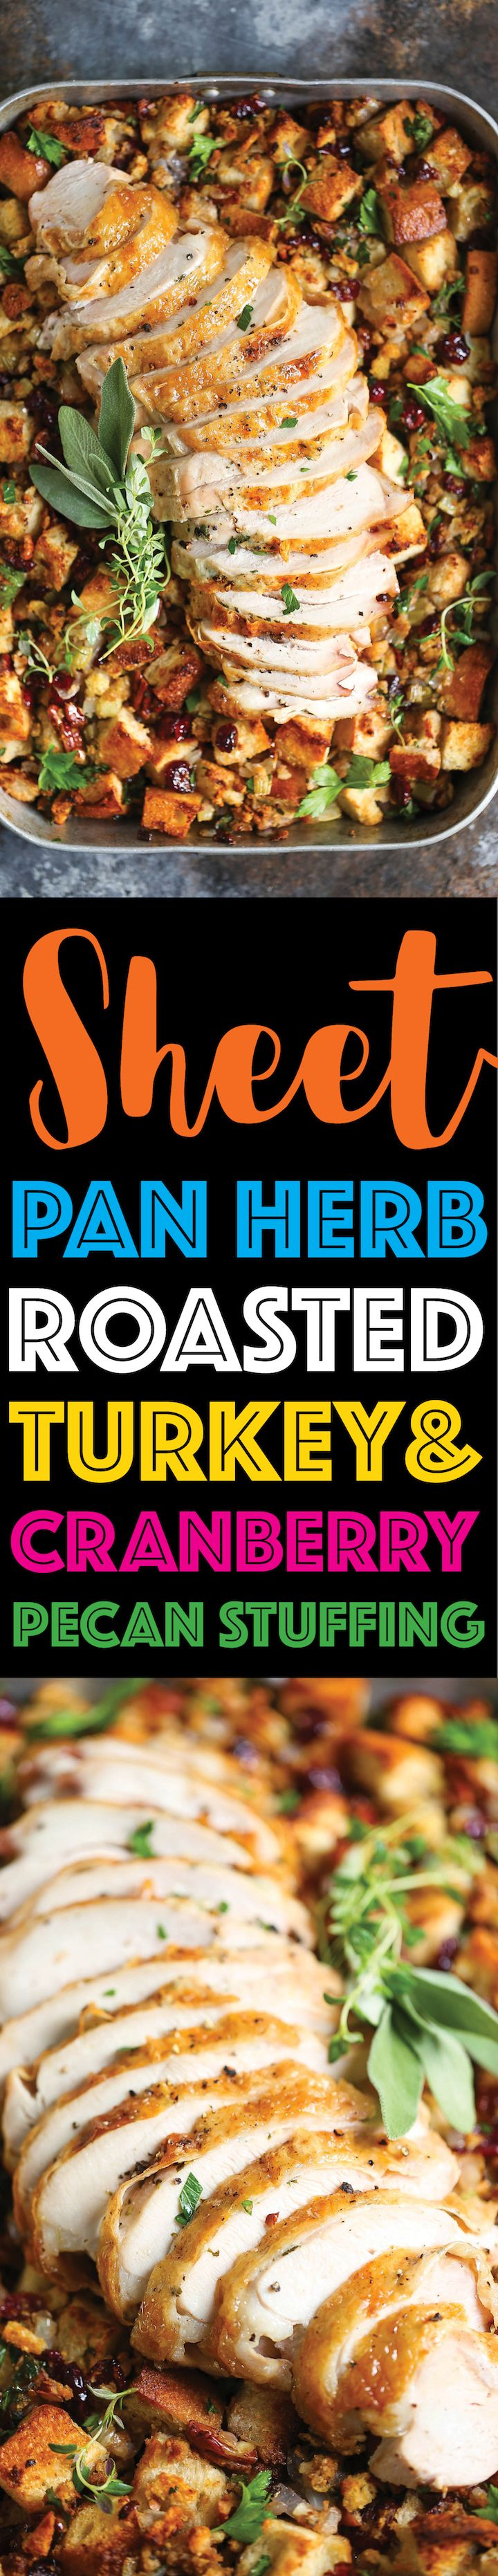 Sheet Pan Herb Roasted Turkey and Cranberry Pecan Stuffing - The easiest Thanksgiving holiday meal! A sheet pan turkey dinner! So easy with less dishes!